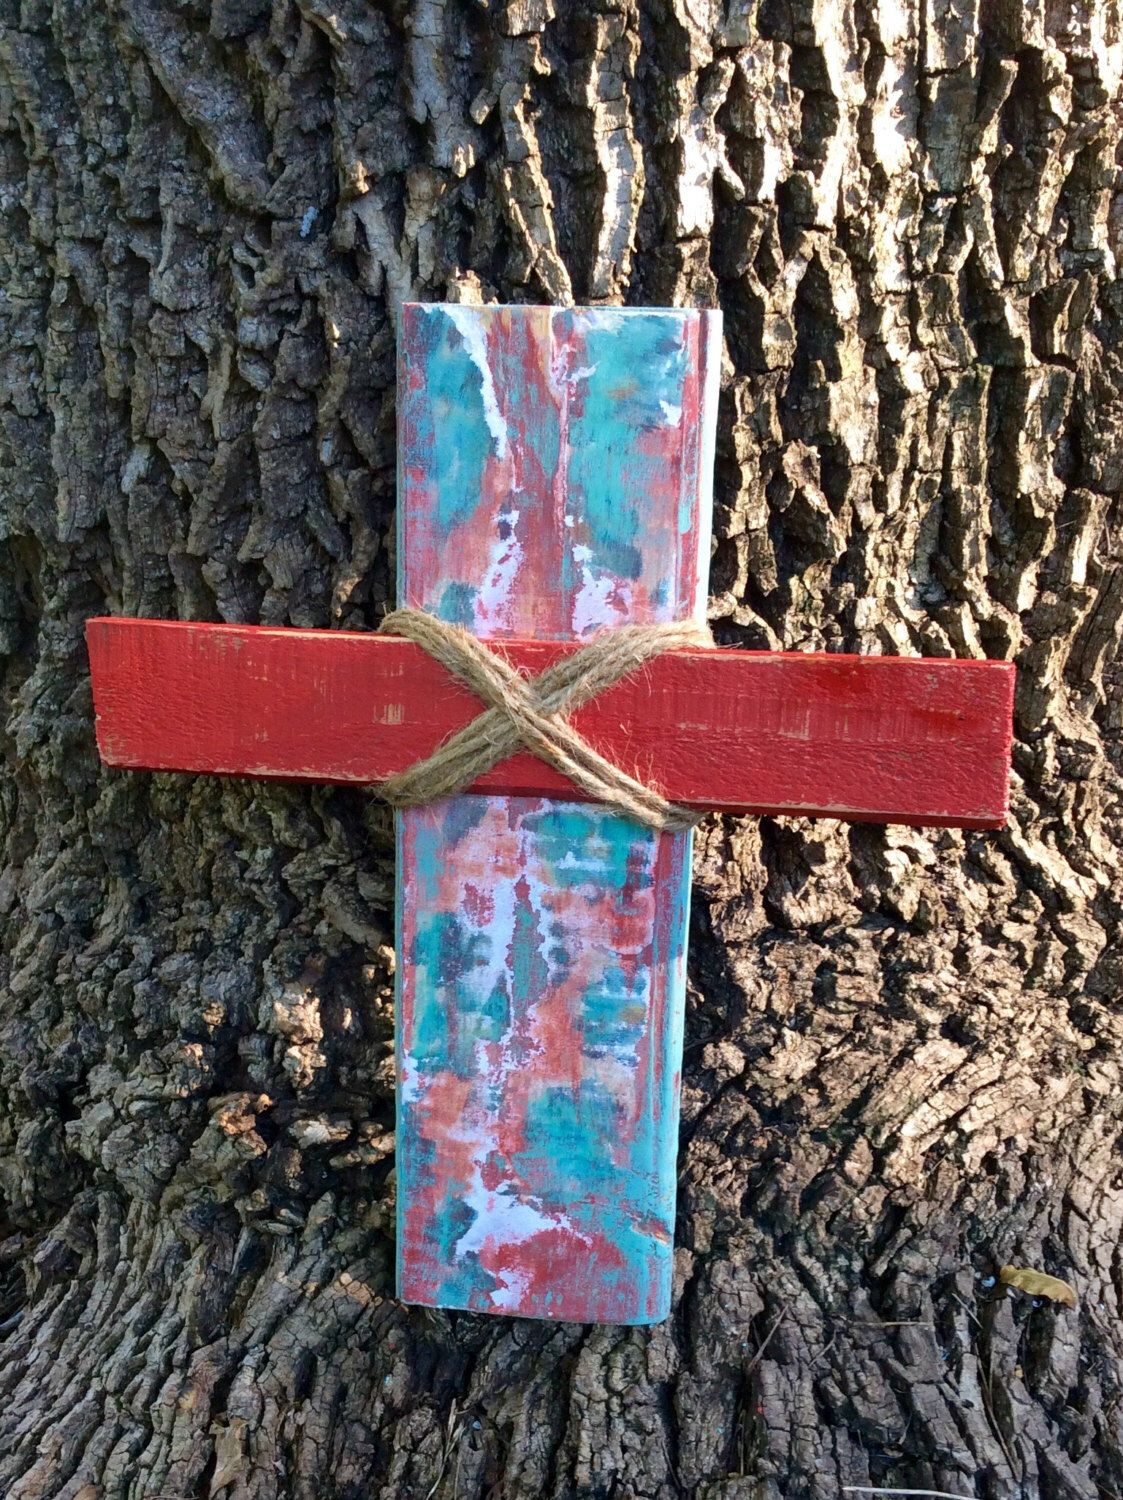 Hand painted Red & Teal Wooden Cross, Reclaimed Pallet Wood Cross by ModBugDeco on Etsy https://www.etsy.com/listing/466153358/hand-painted-red-teal-wooden-cross